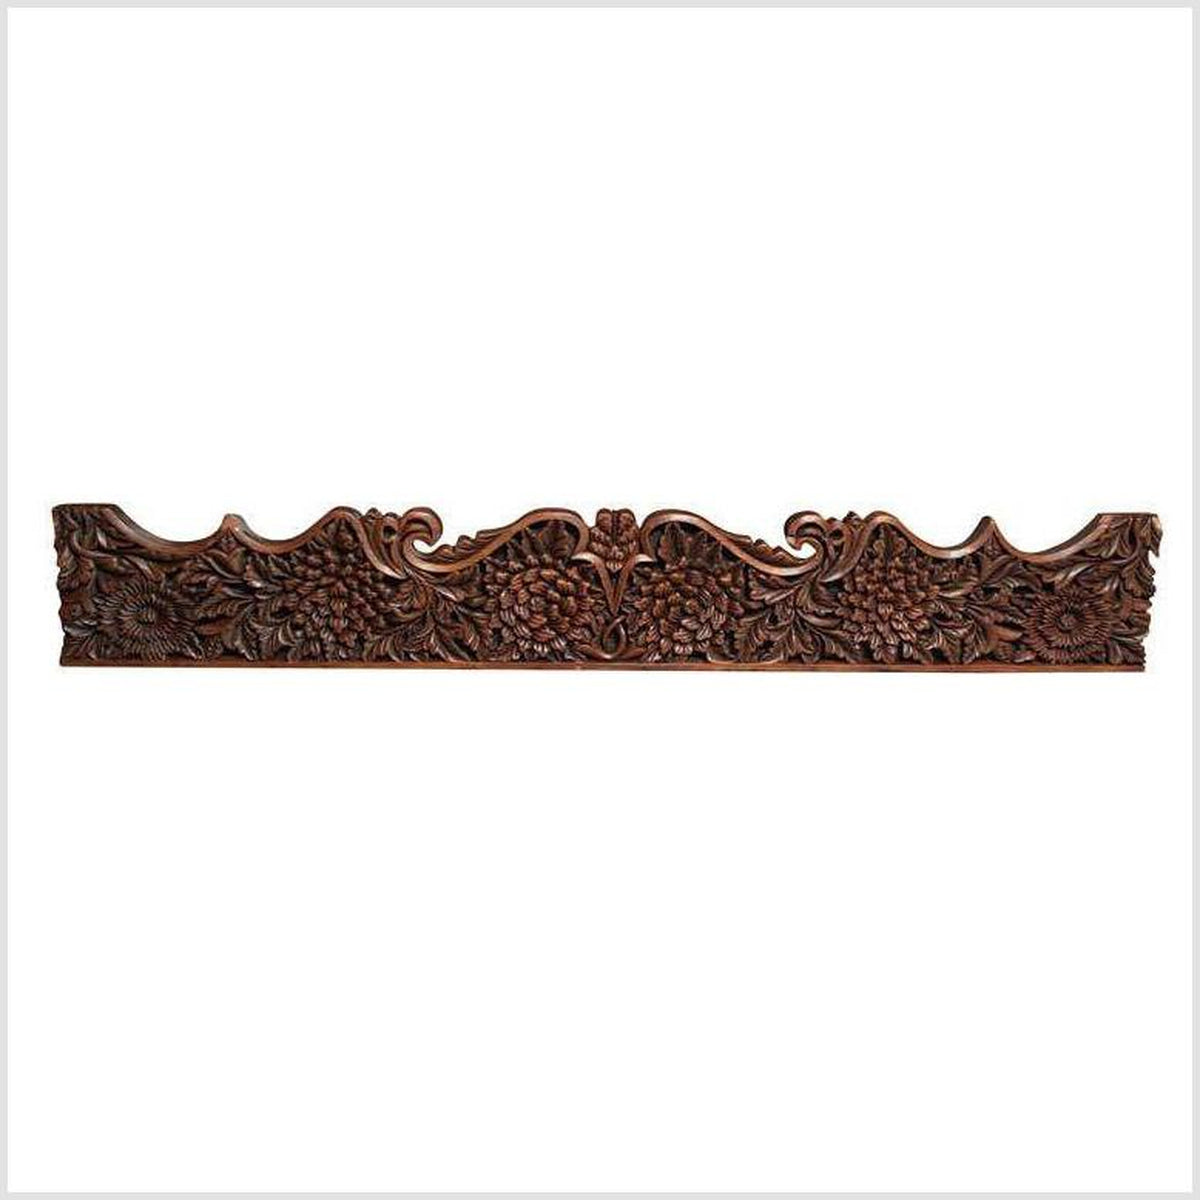 Large Carved Teak Architectural Panel With Foliage Motifs